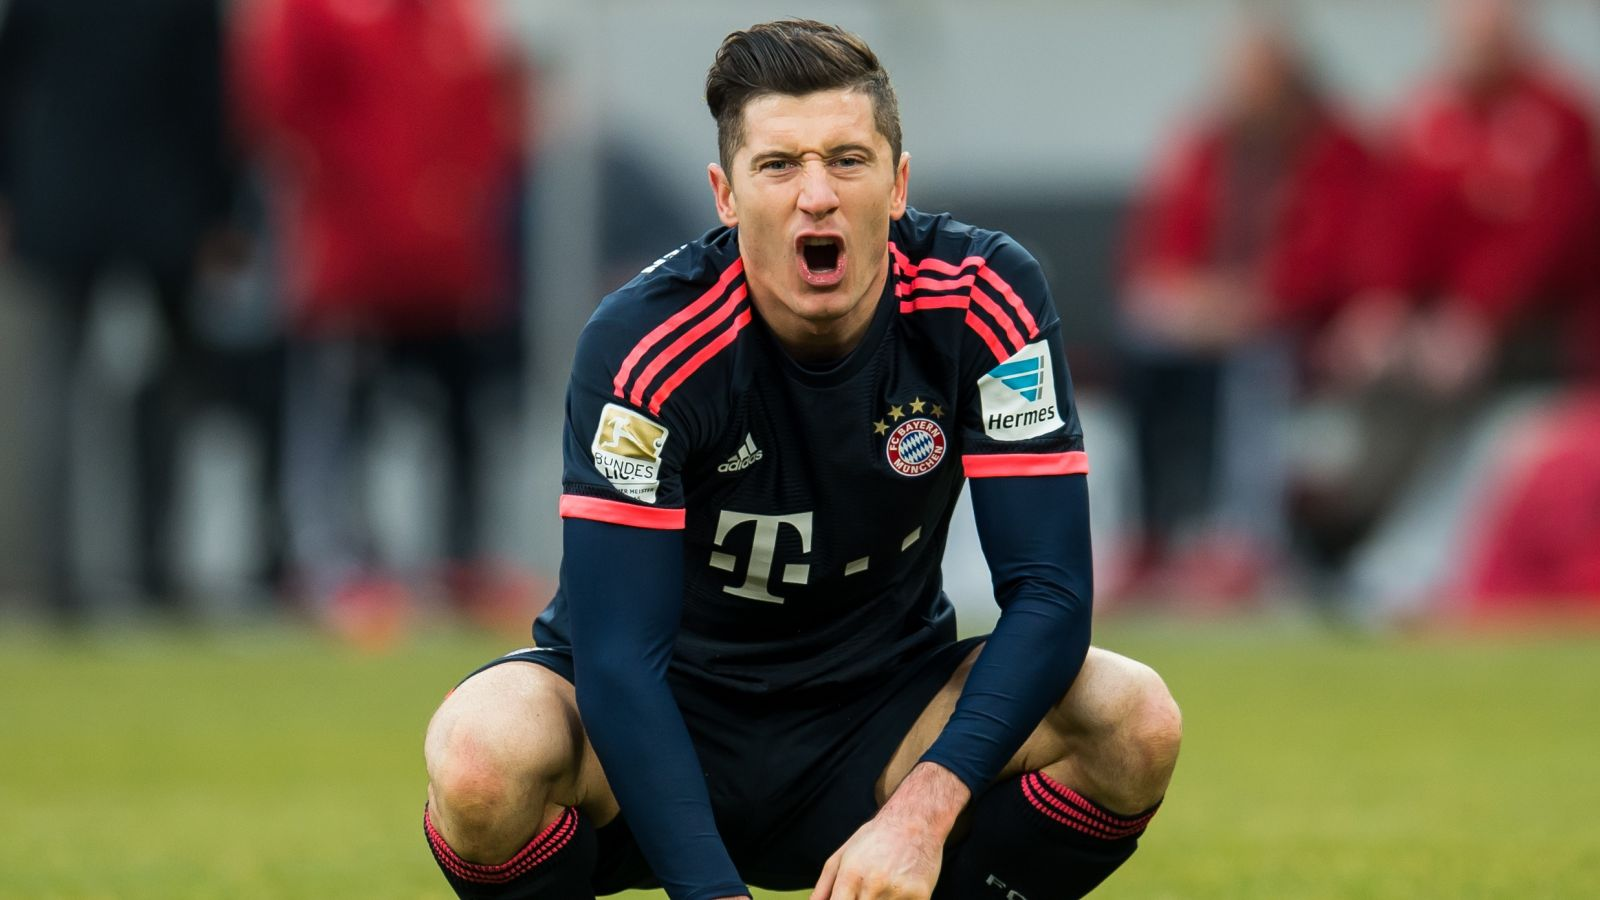 Guardiola wants to pair Lewandowski with Aguero at Man City